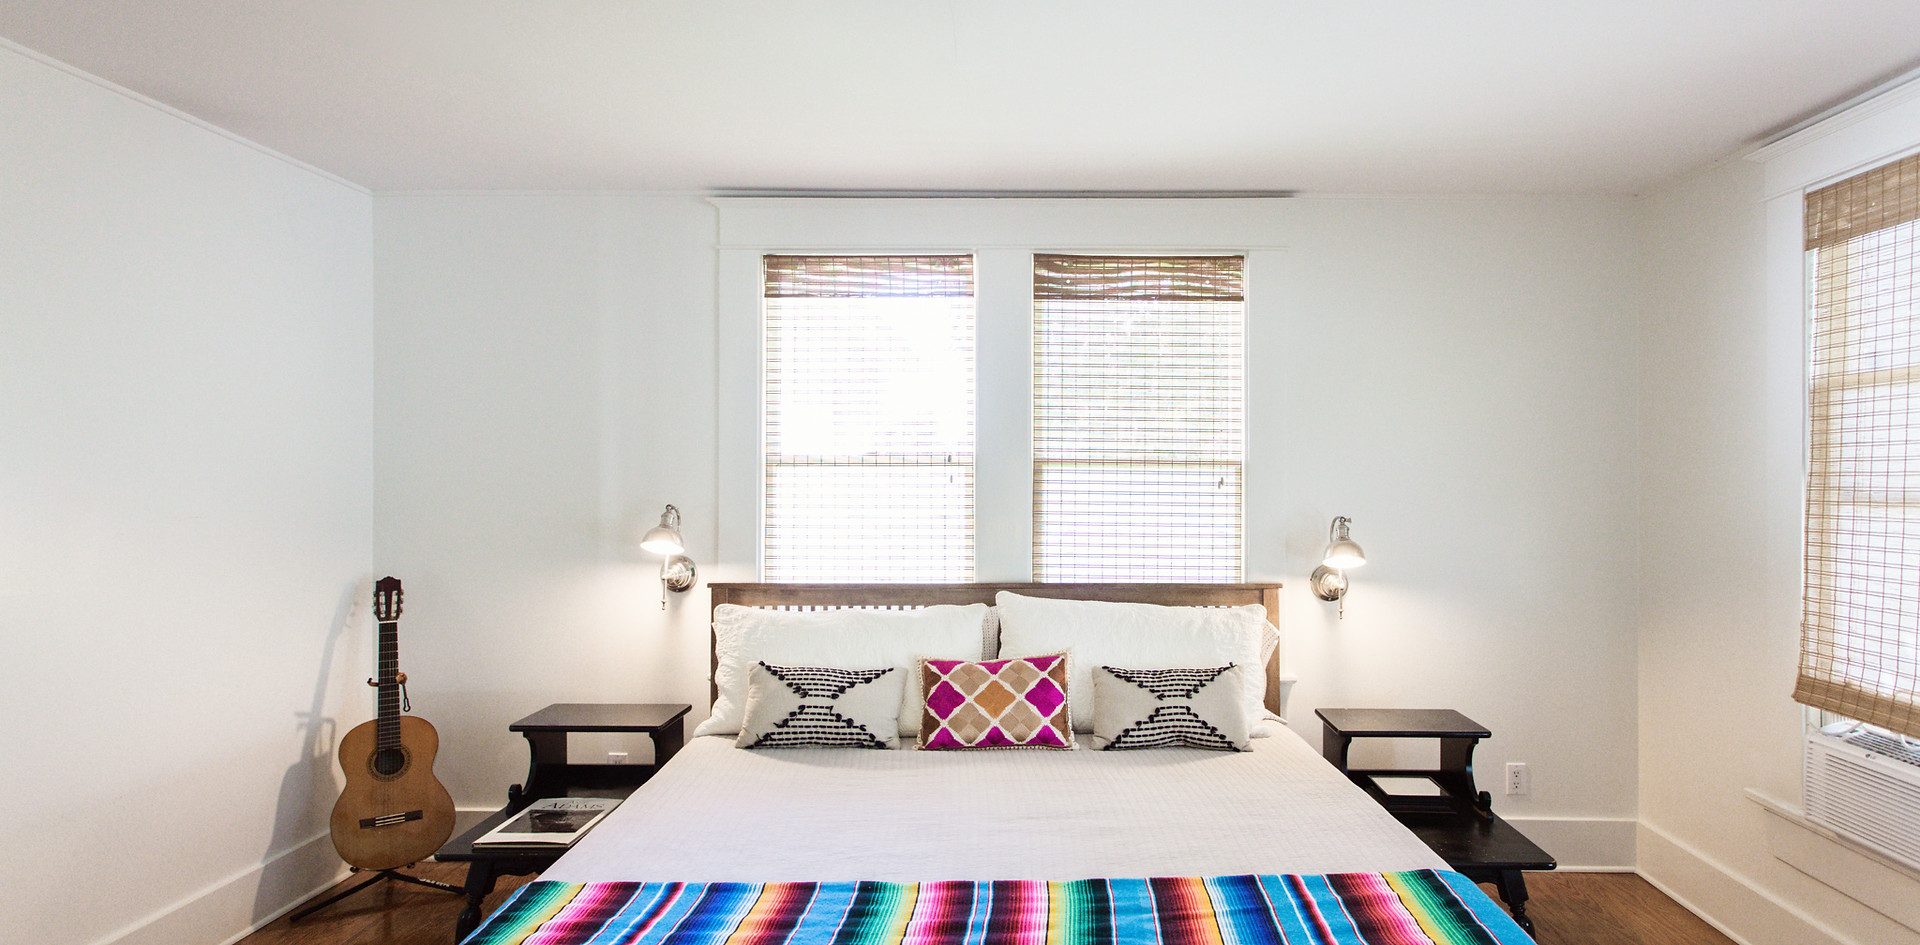 Airbnb, Homeaway, Homeshare Commercial Photography